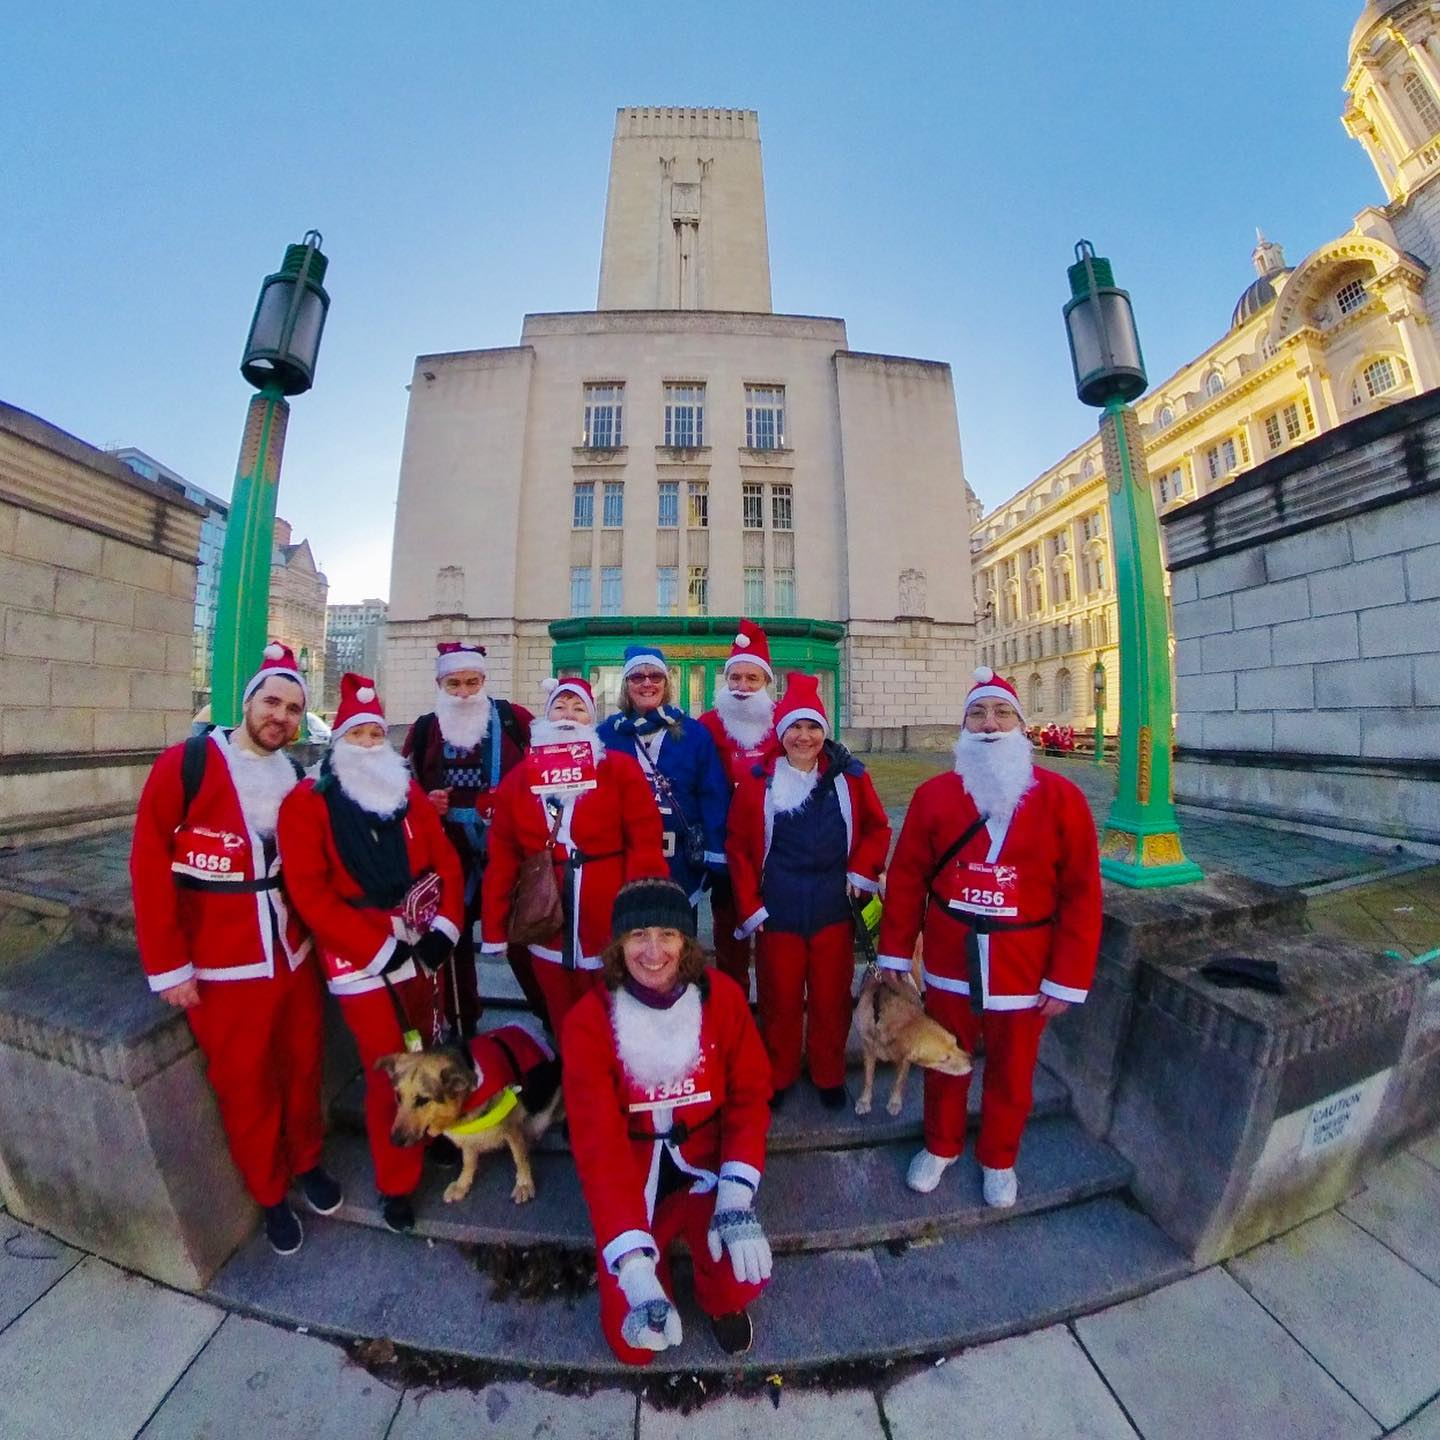 http://Nine%20service%20users%20and%20volunteers%20dressed%20as%20Santa%20with%20race%20numbers%20attached%20to%20their%20fronts%20standing%20outside%20the%20art-deco%20tunnel%20ventilation%20shaft%20at%20Liverpool%20waterfront.